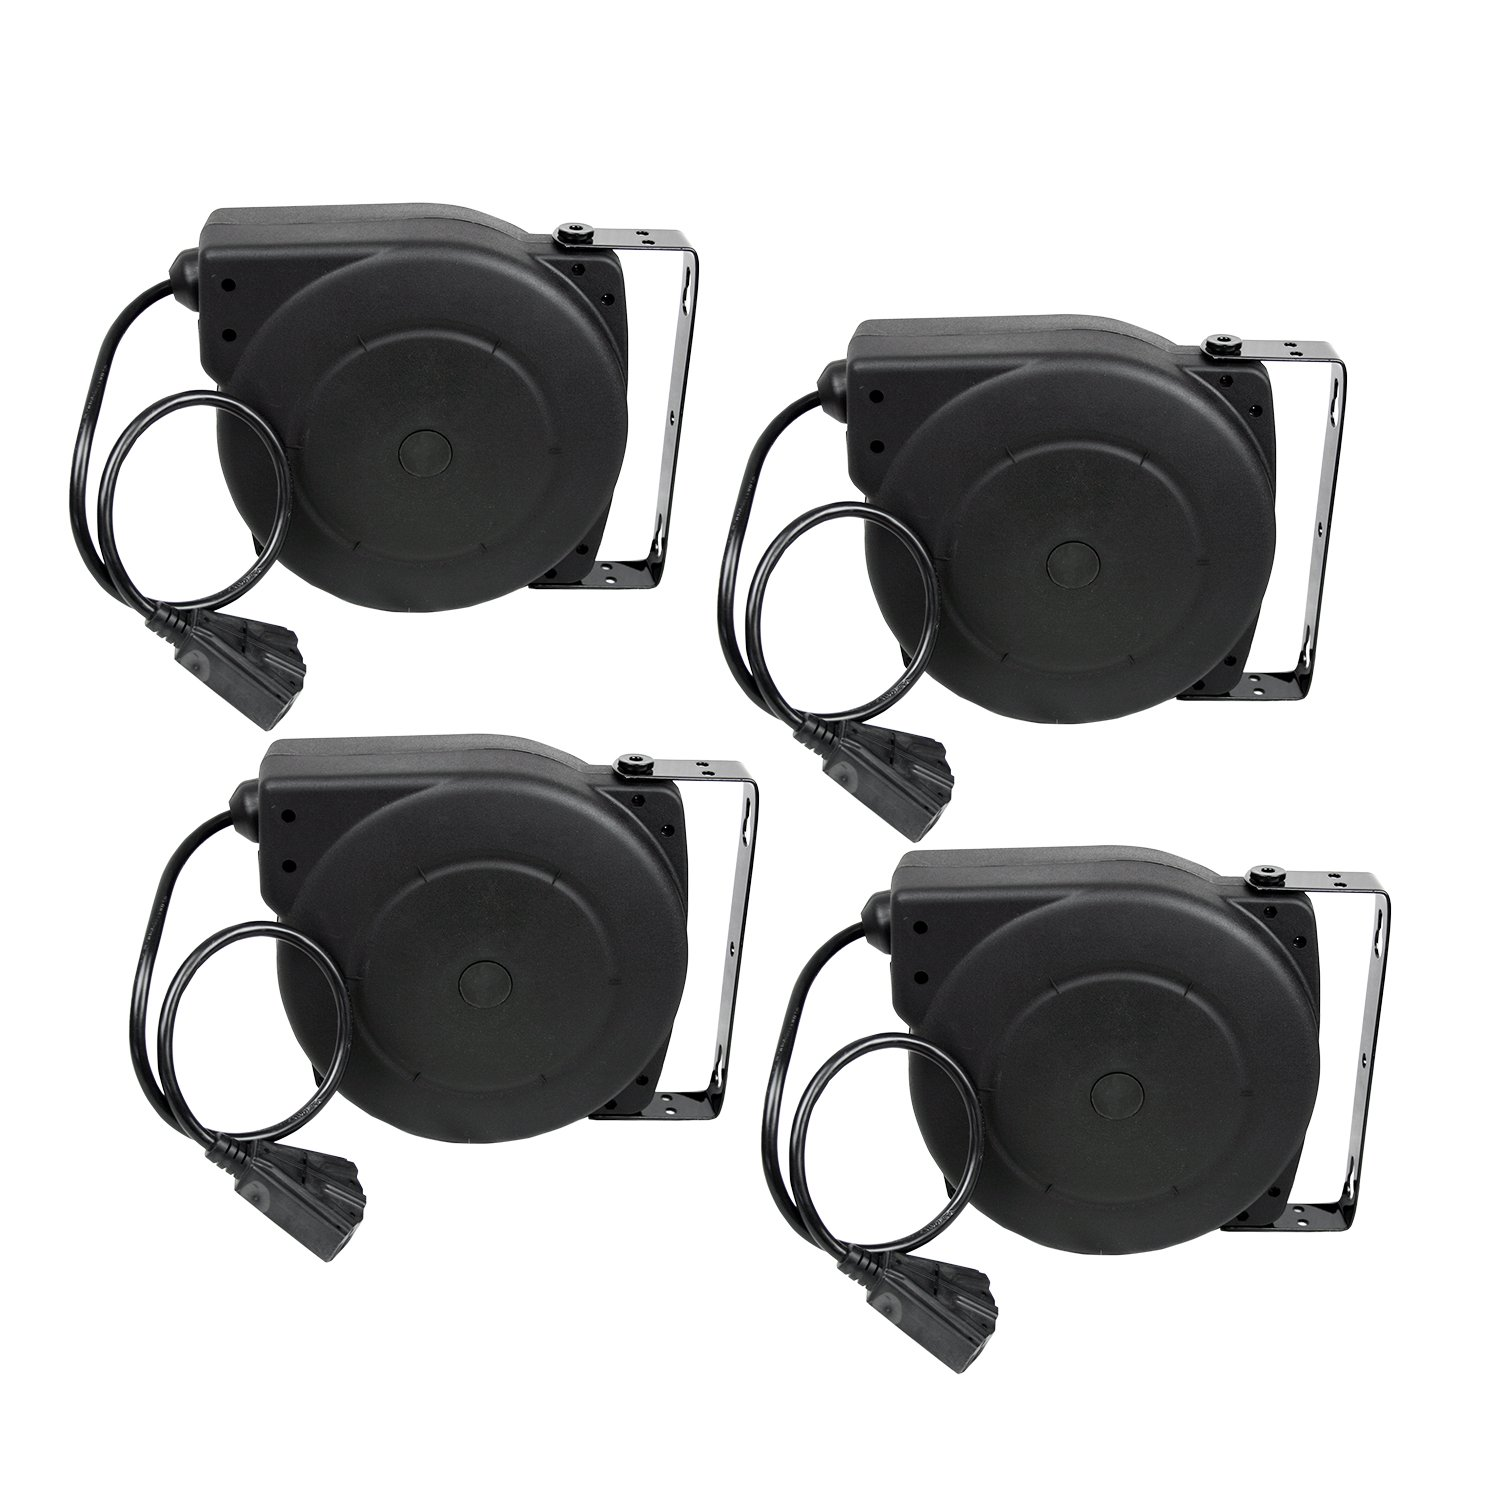 Alemite 7262-A 40-Feet 12/3 Retractable Extension Cord Reel, 4-Pack